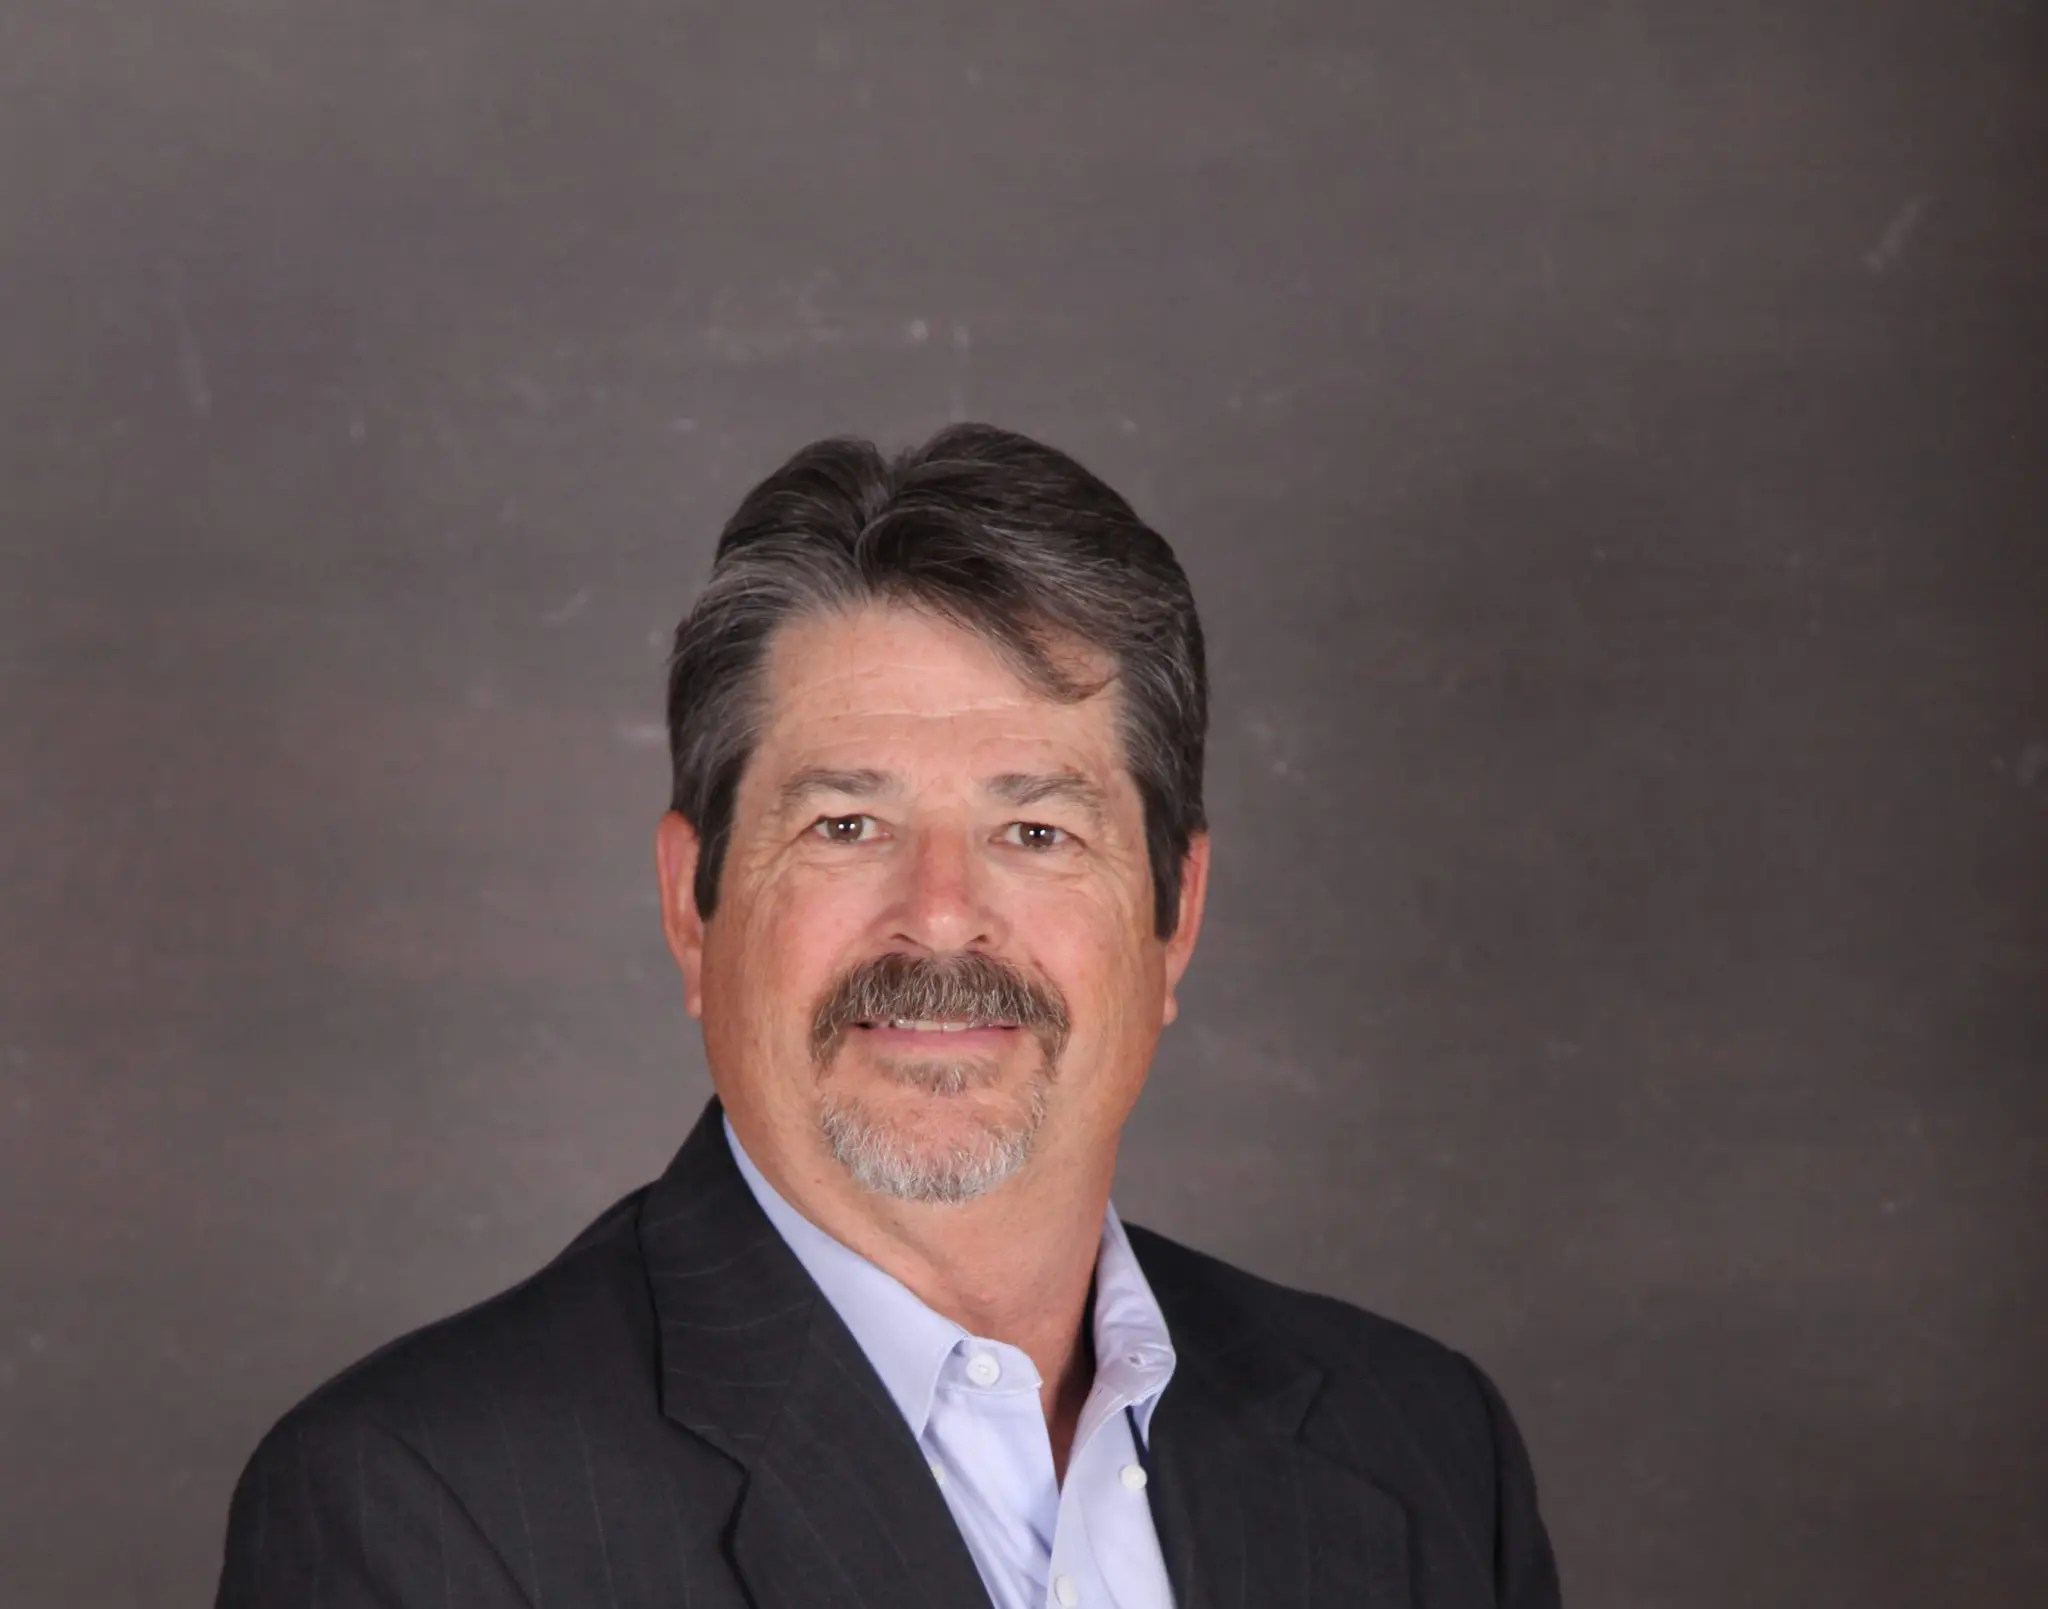 BCCK Holding Company (BCCK), a leader in engineering, procurement, fabrication and field construction services, has appointed Tony Canfield as vice president of engineering